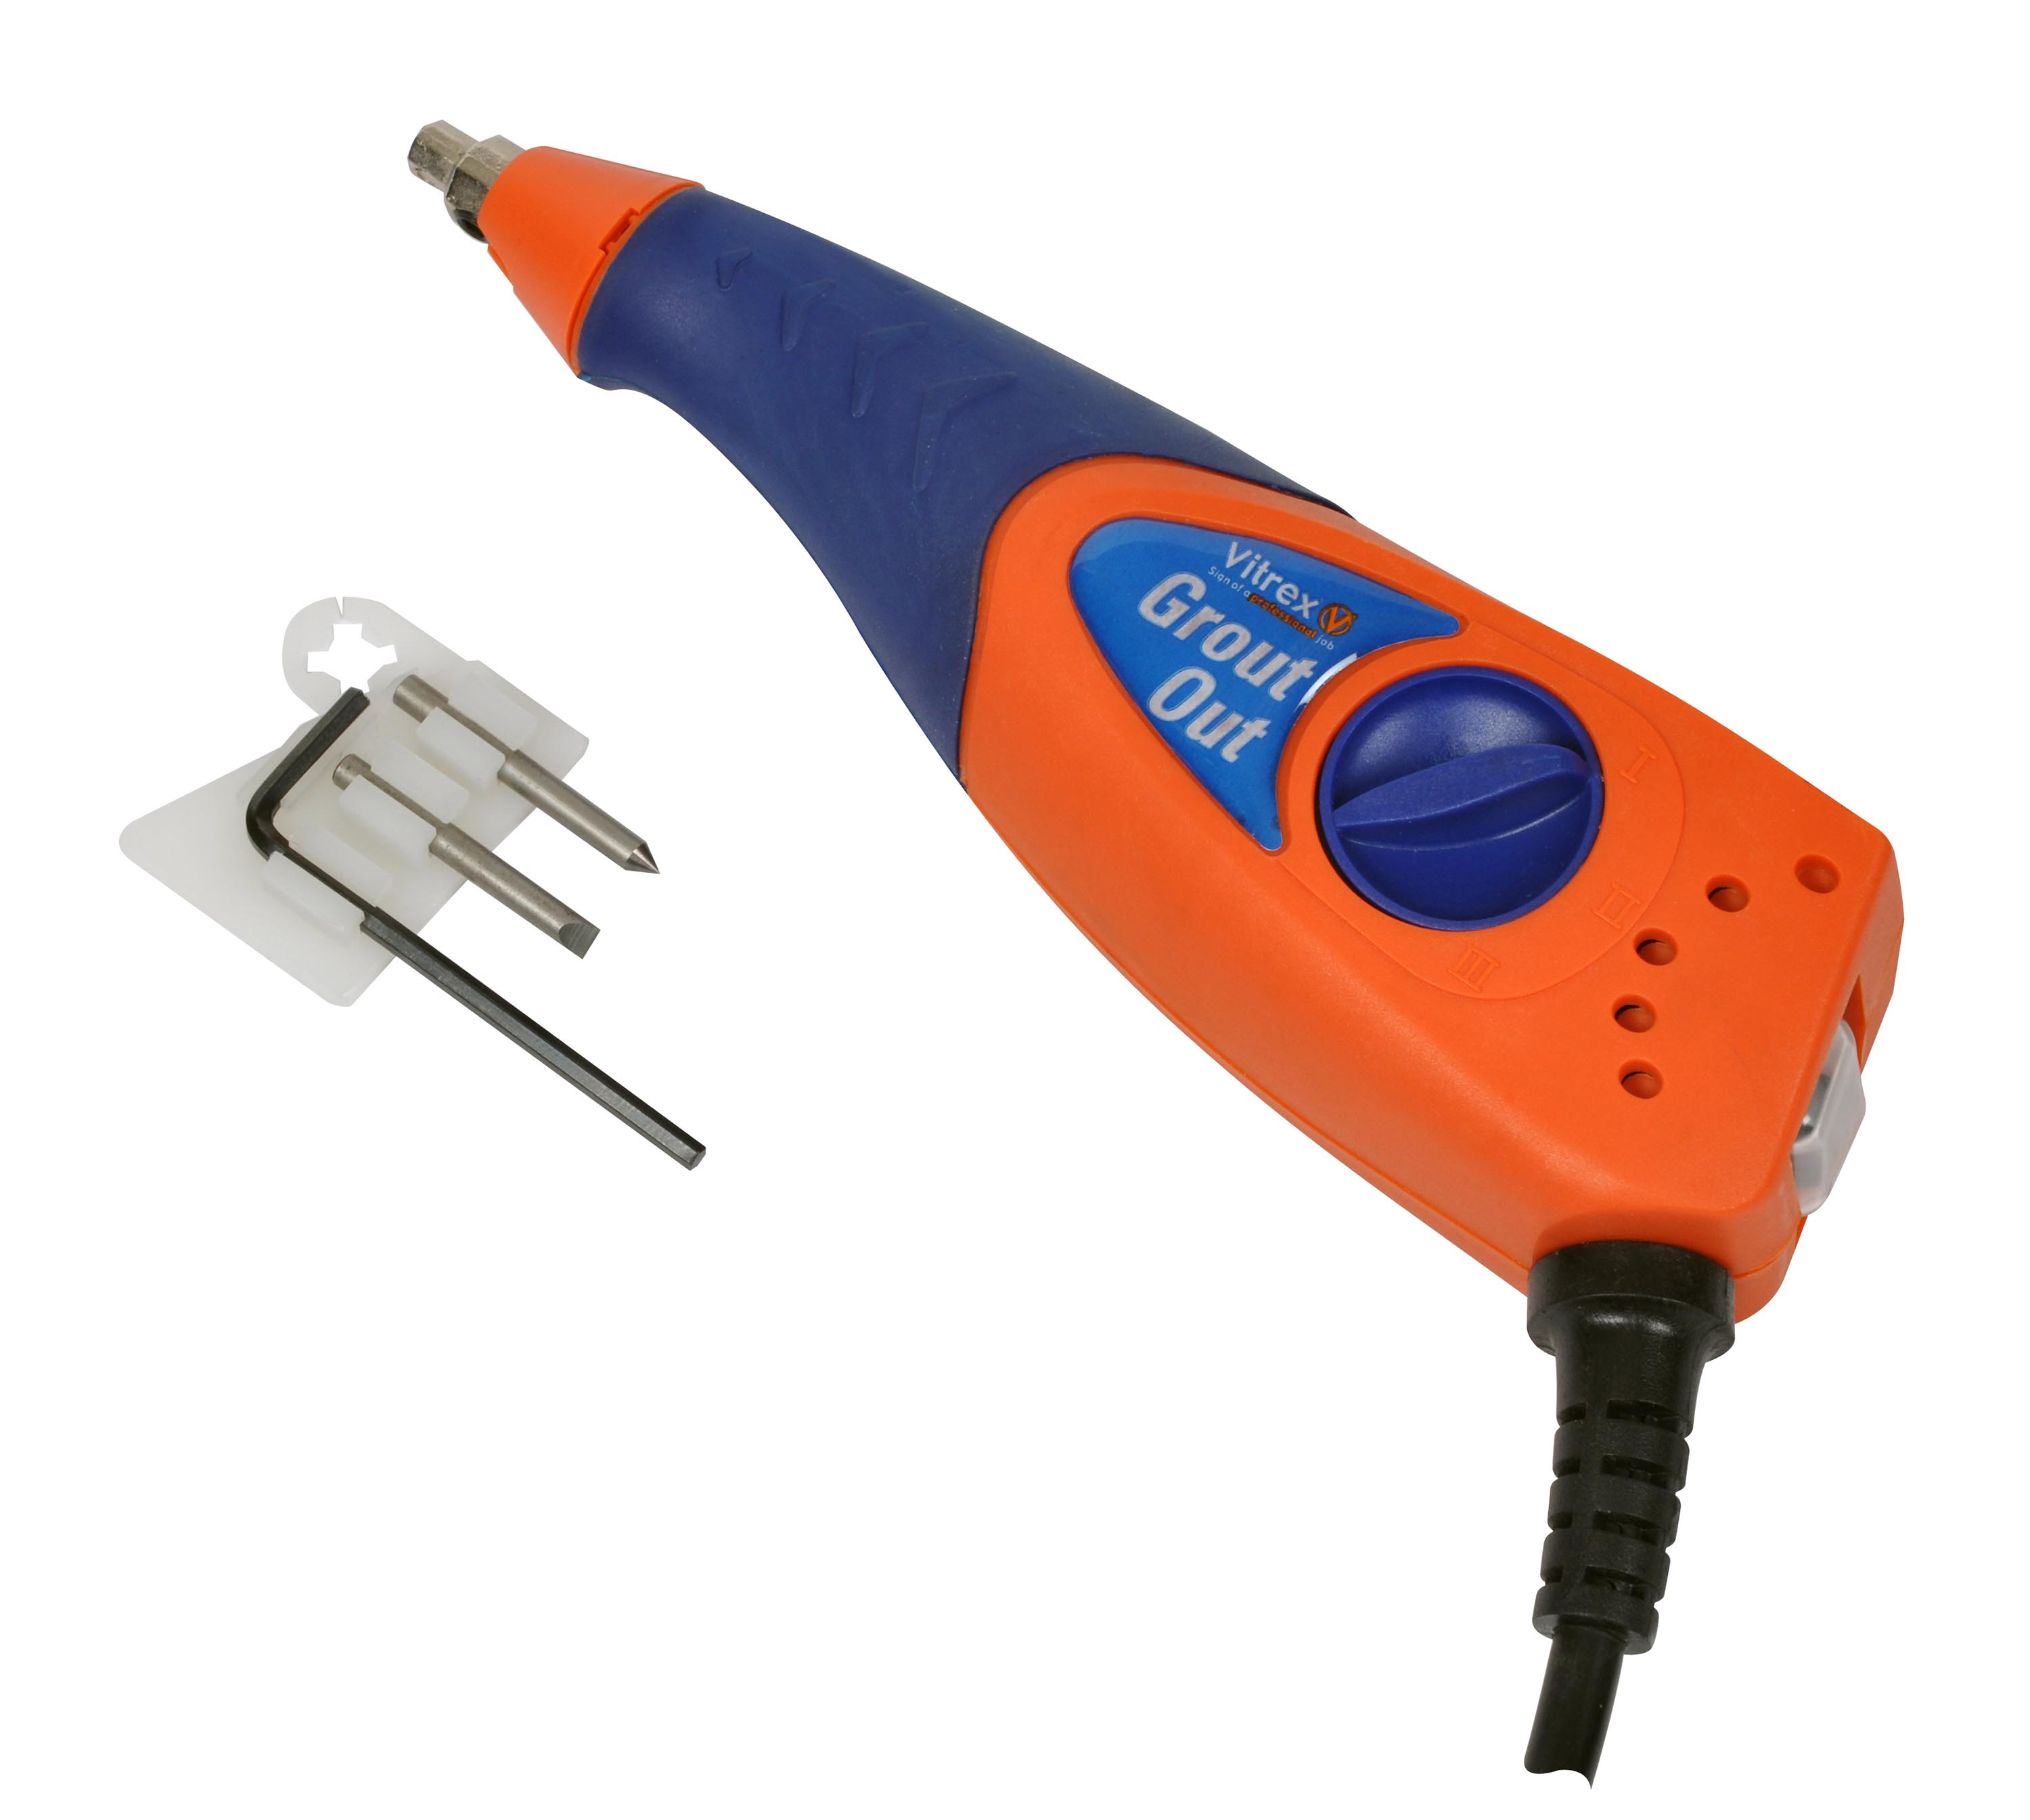 Grout Out - Electric Grout Remover